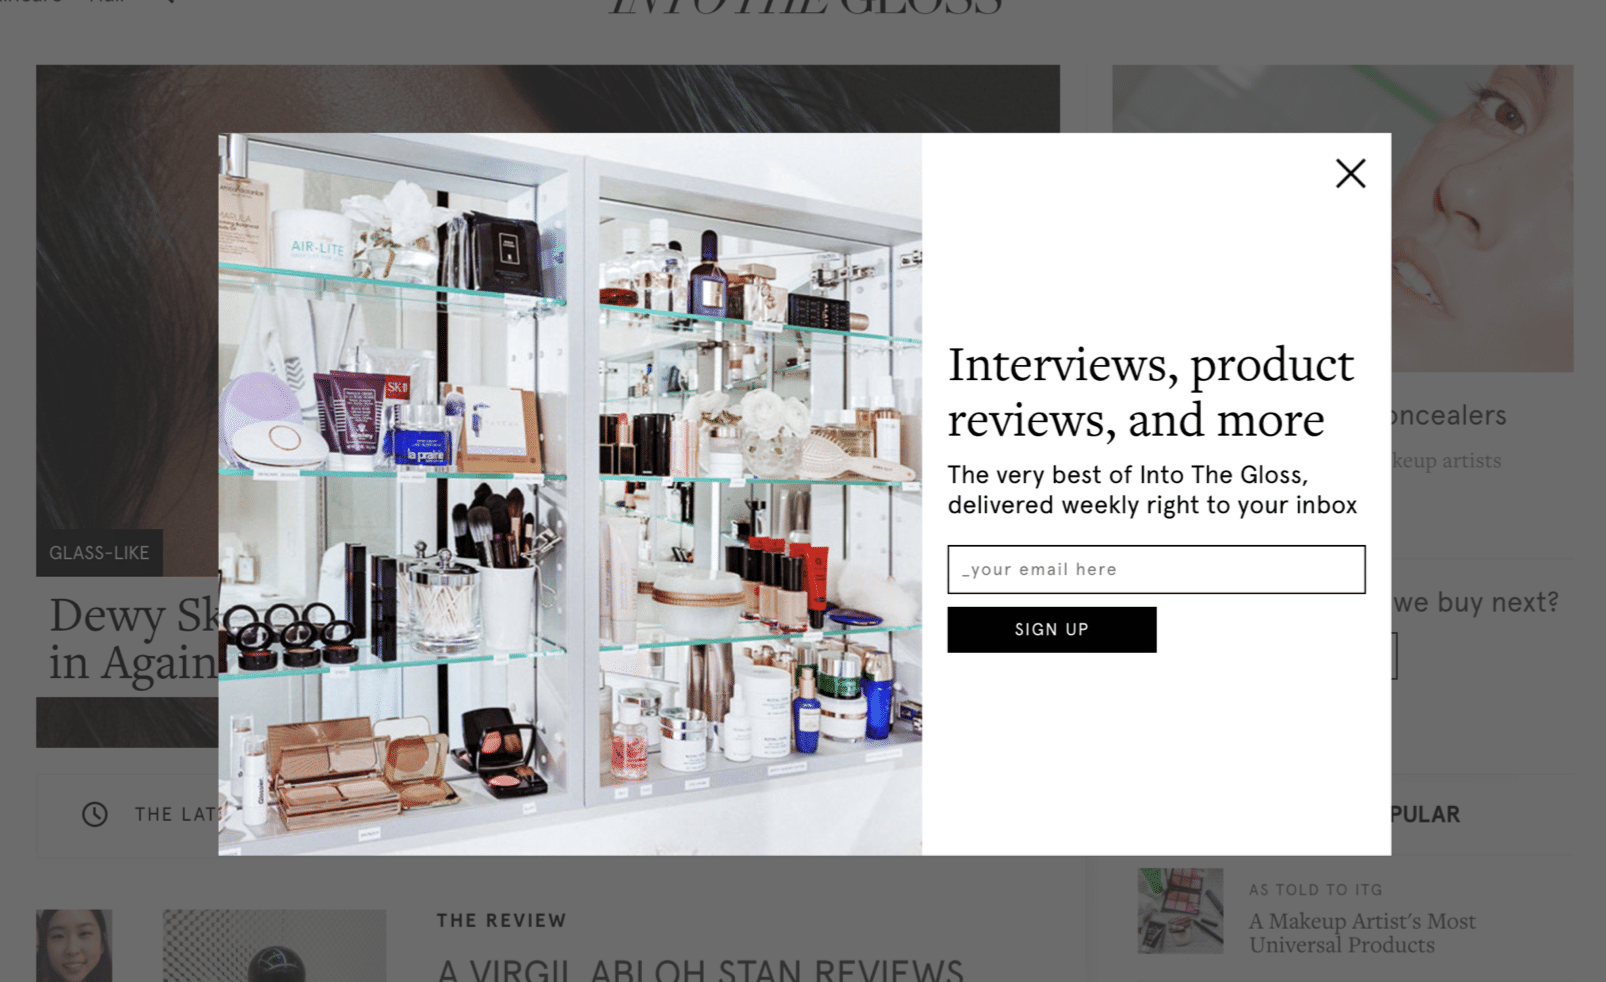 example popup newsletter signup form on a website about beauty products